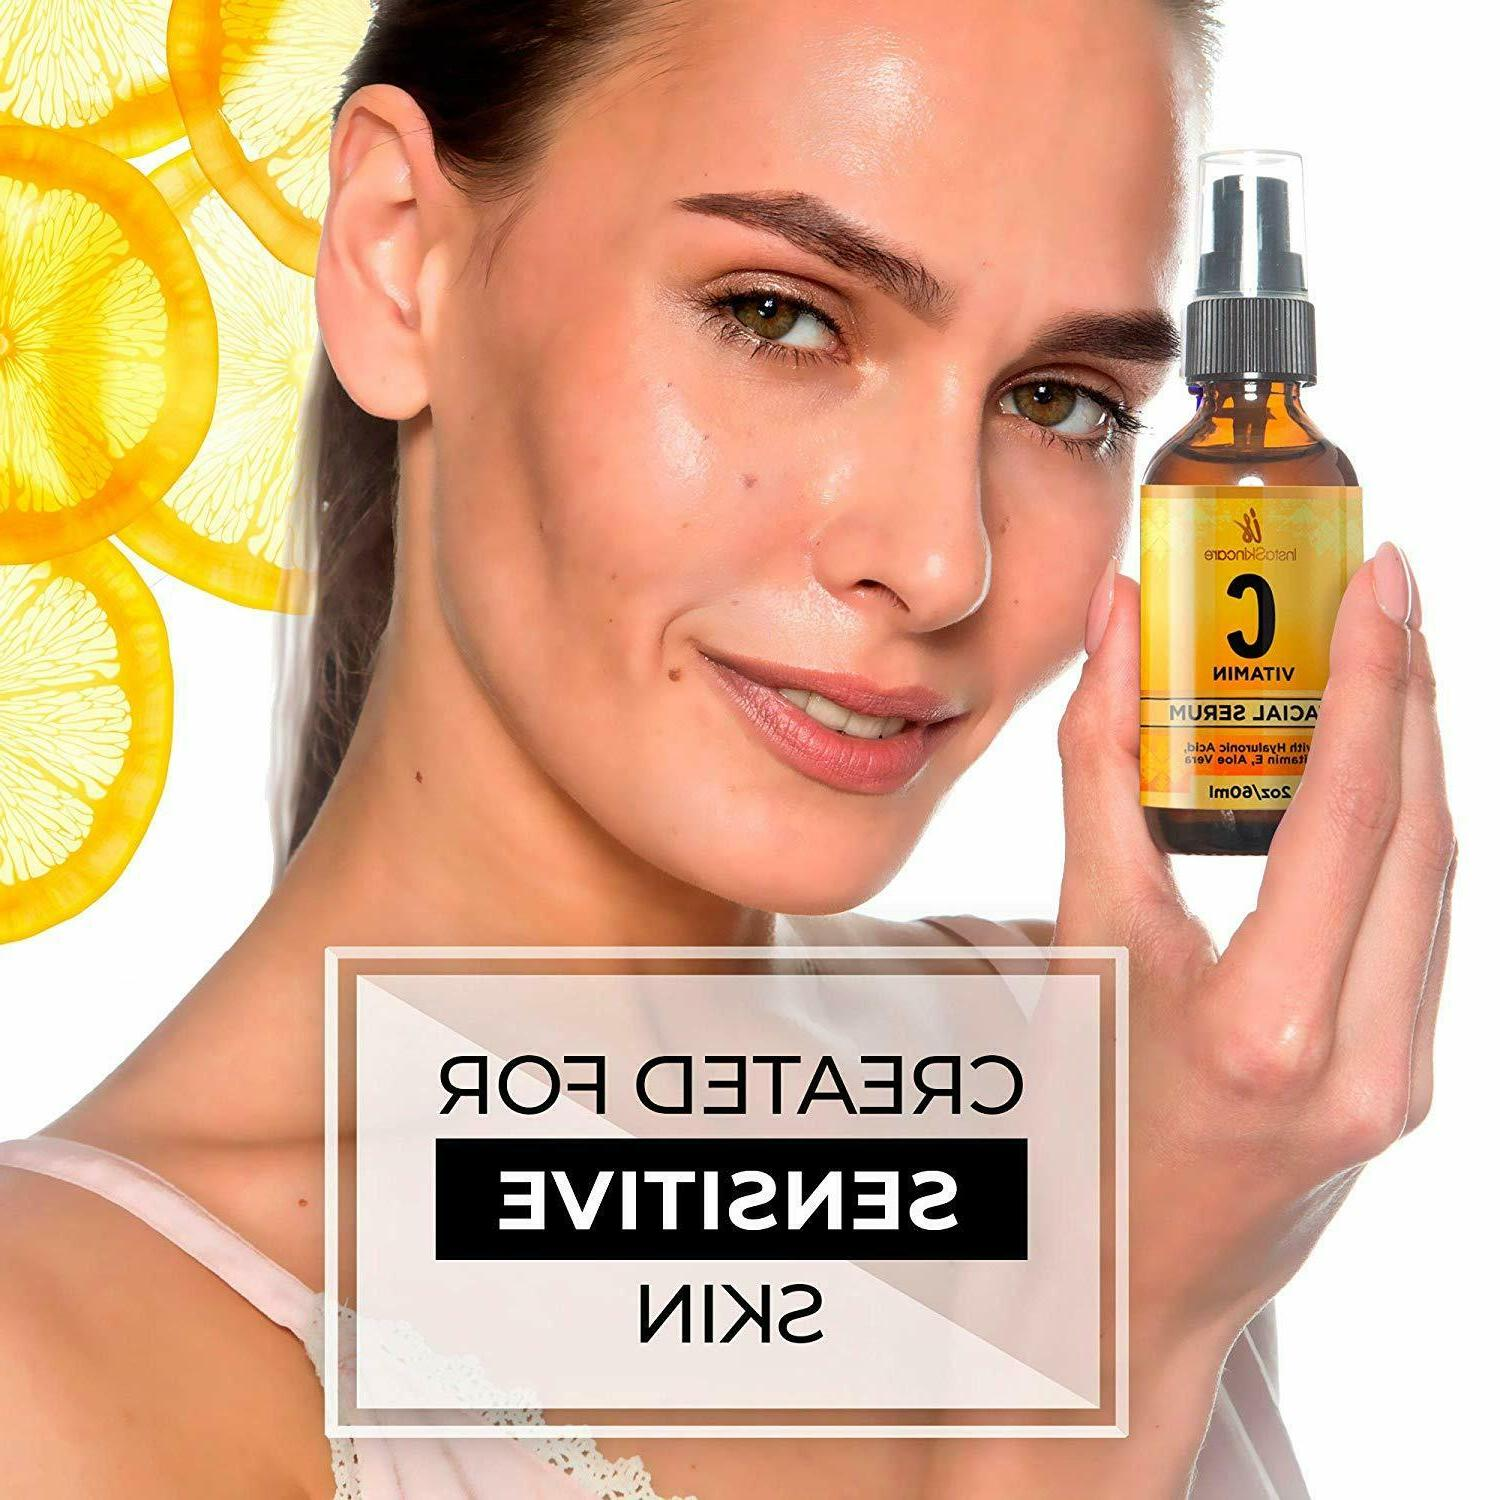 Vitamin Serum for Face with and